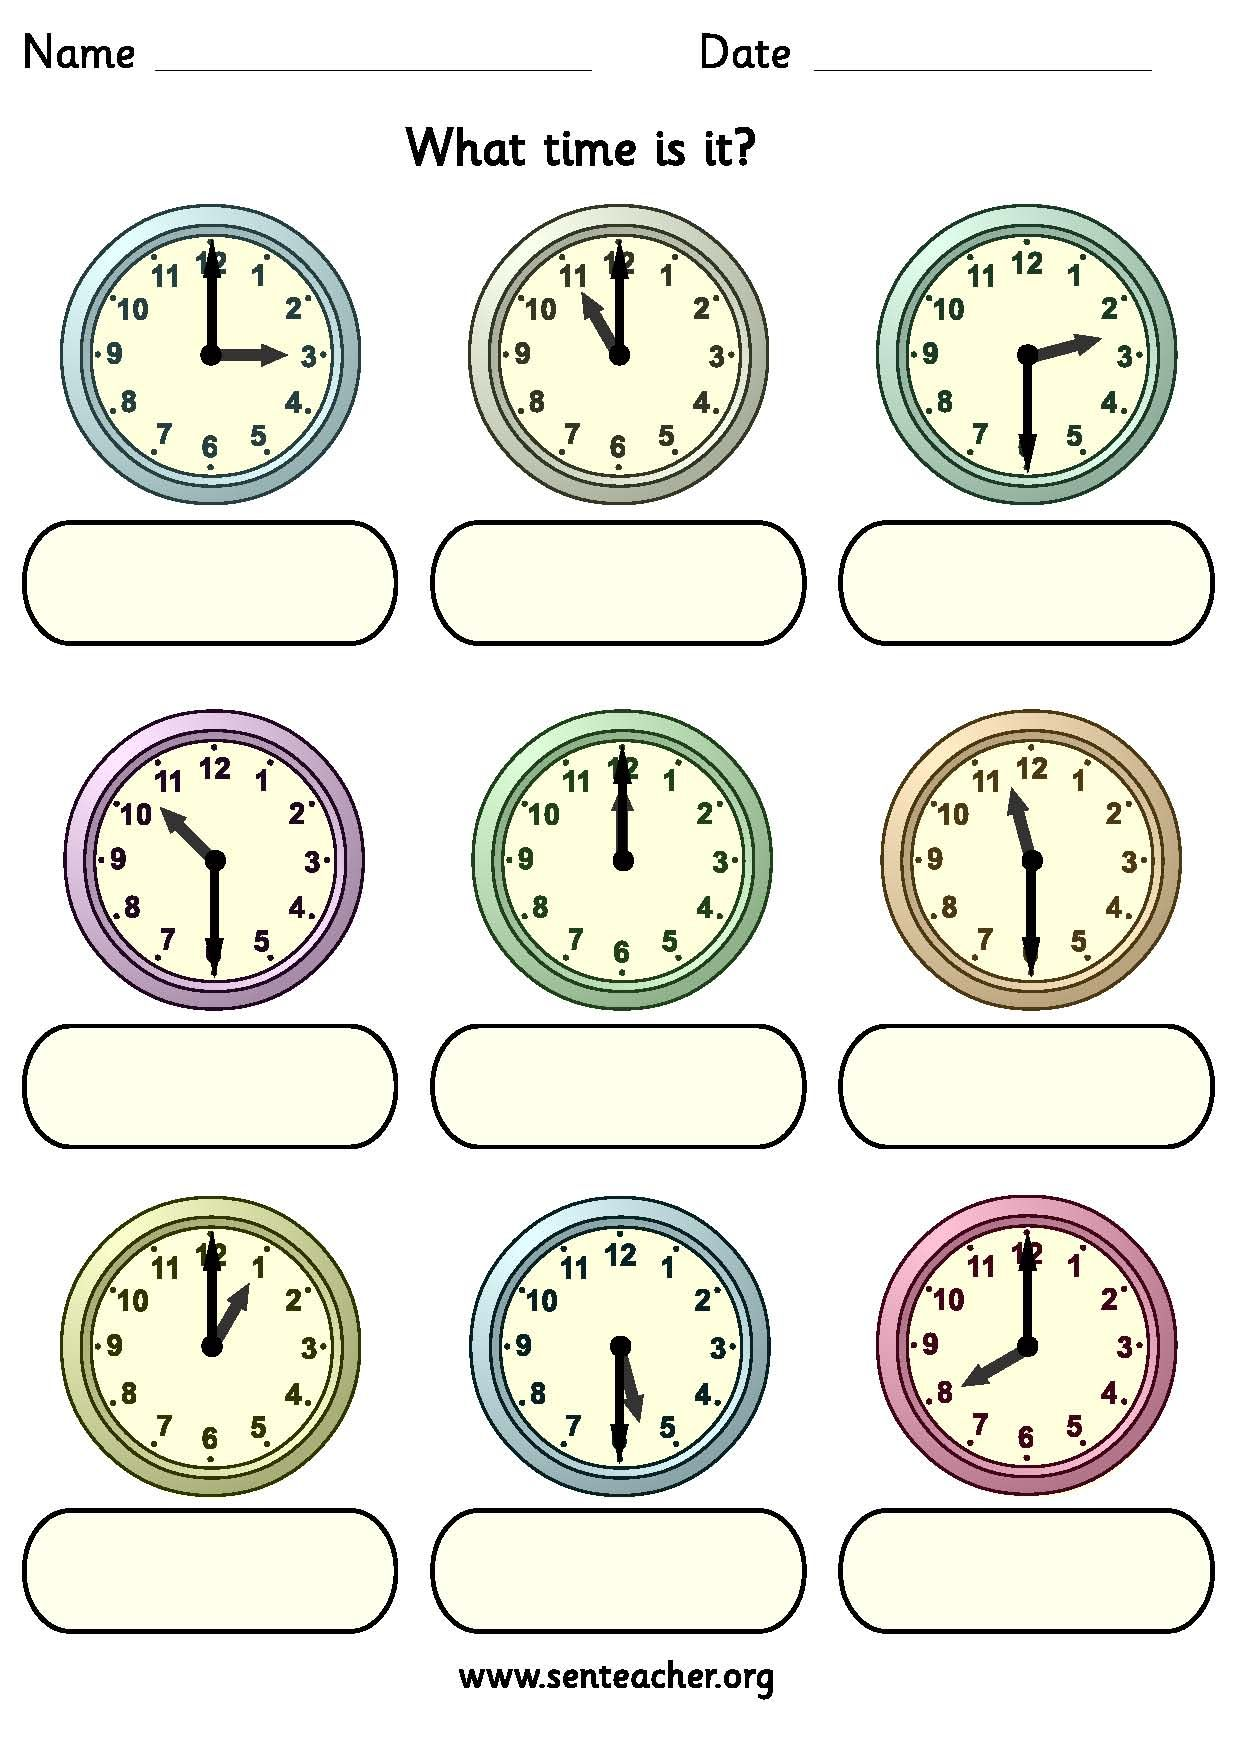 Worksheet Containing 9ogue Clocks Showing O Clock Or